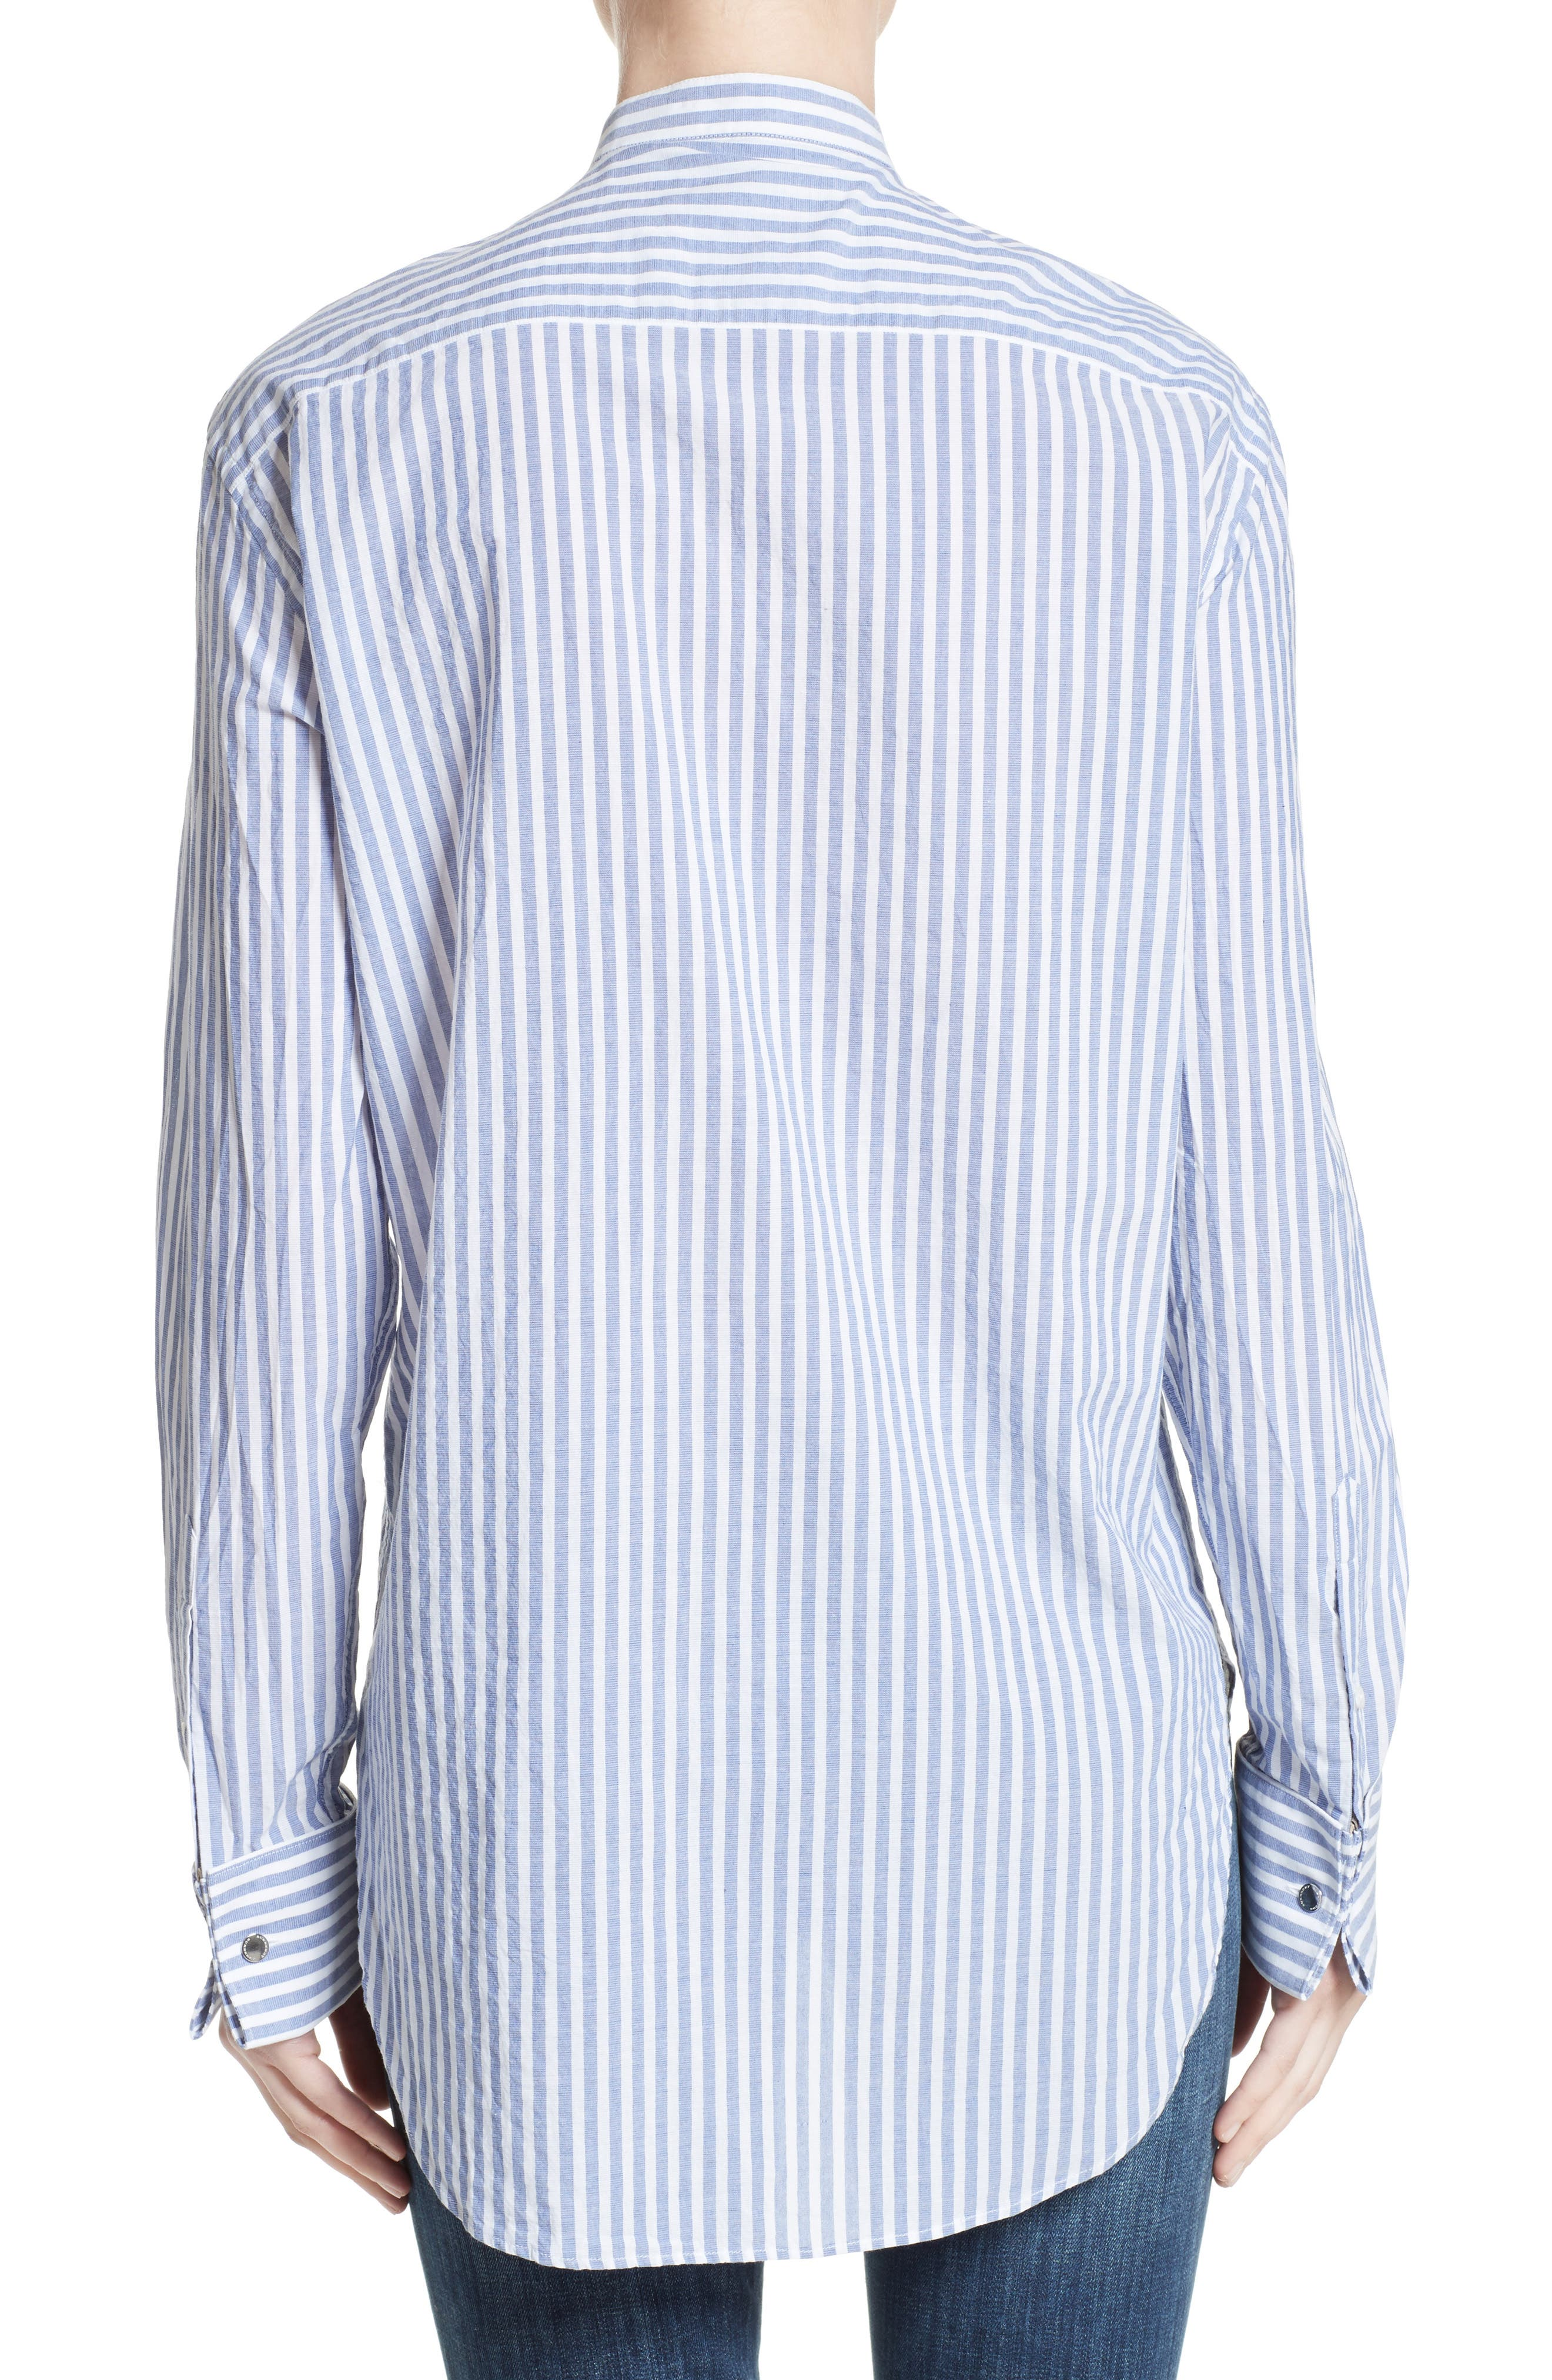 Benfleet Stripe Cotton Top,                             Alternate thumbnail 2, color,                             Pale Blue/ White